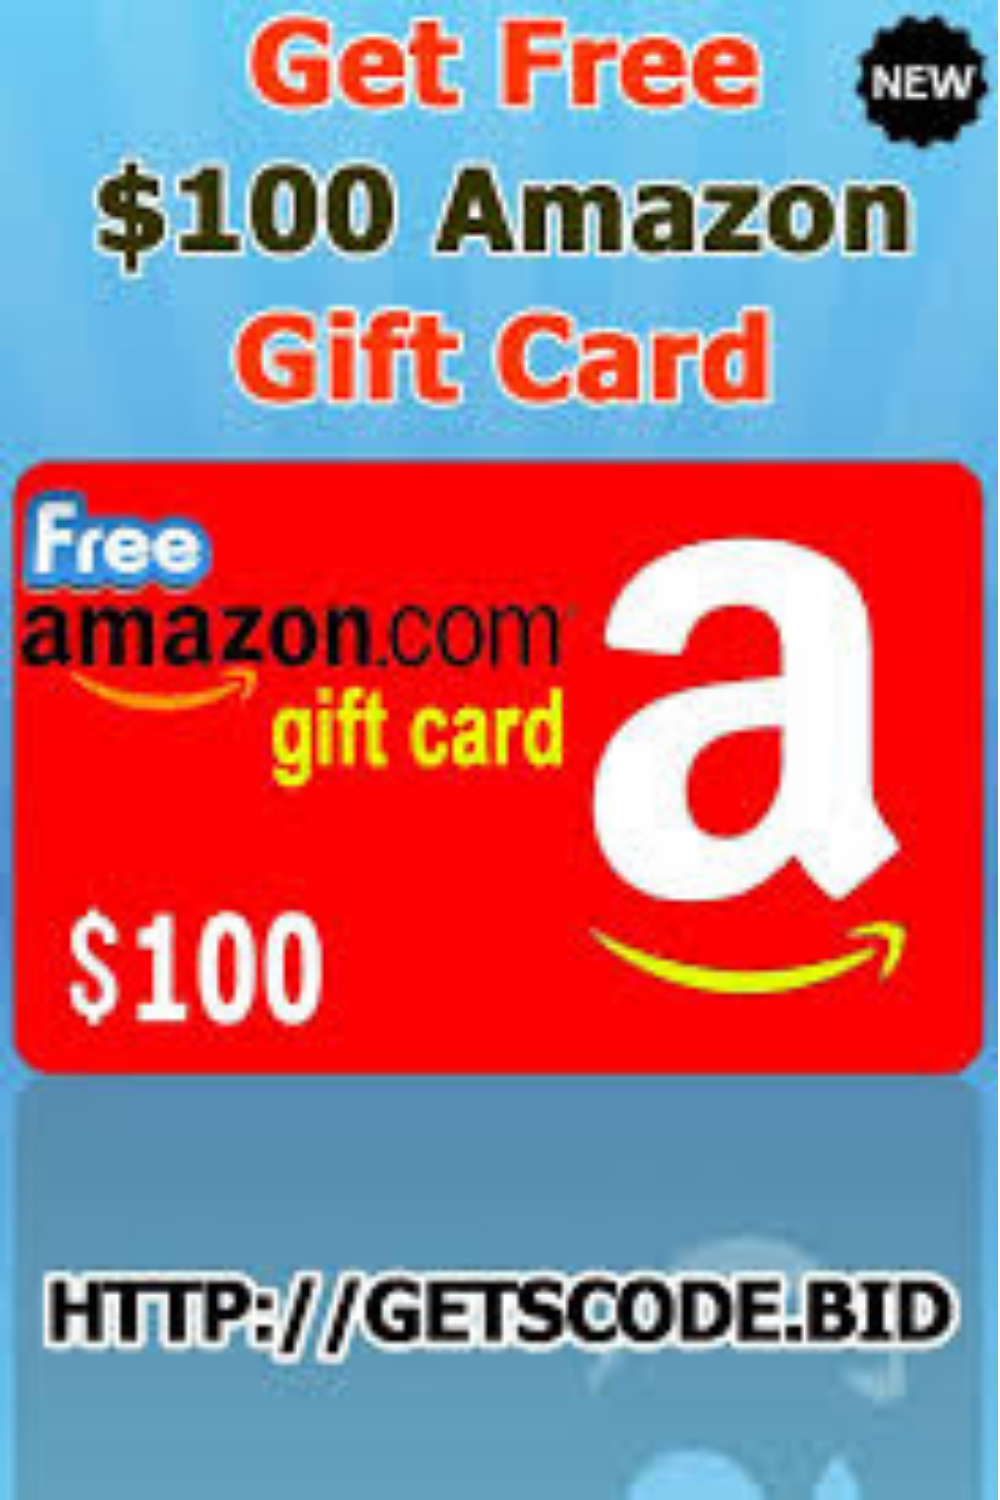 How To Redeem An Amazon Gift Card In 2021 Amazon Gift Card Free Free Amazon Products Amazon Gift Cards